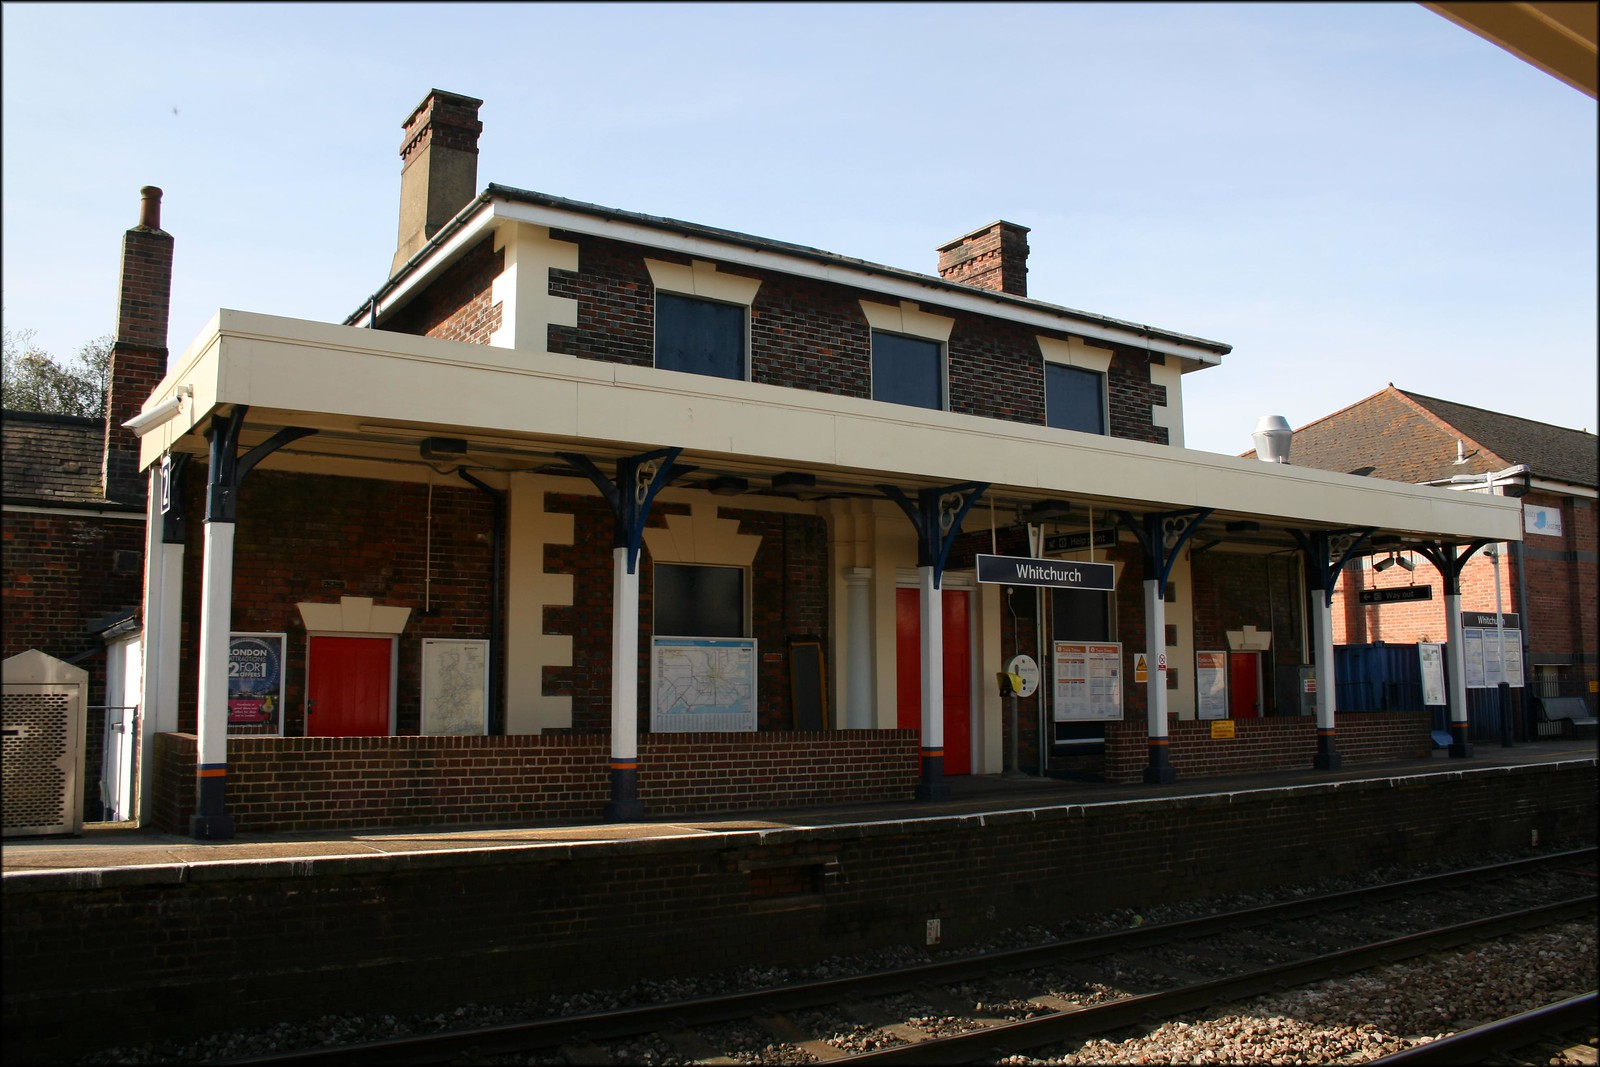 Whitchurch station Between Basingstoke and Andover on the West of England Line which runs from London Waterloo to Exeter.